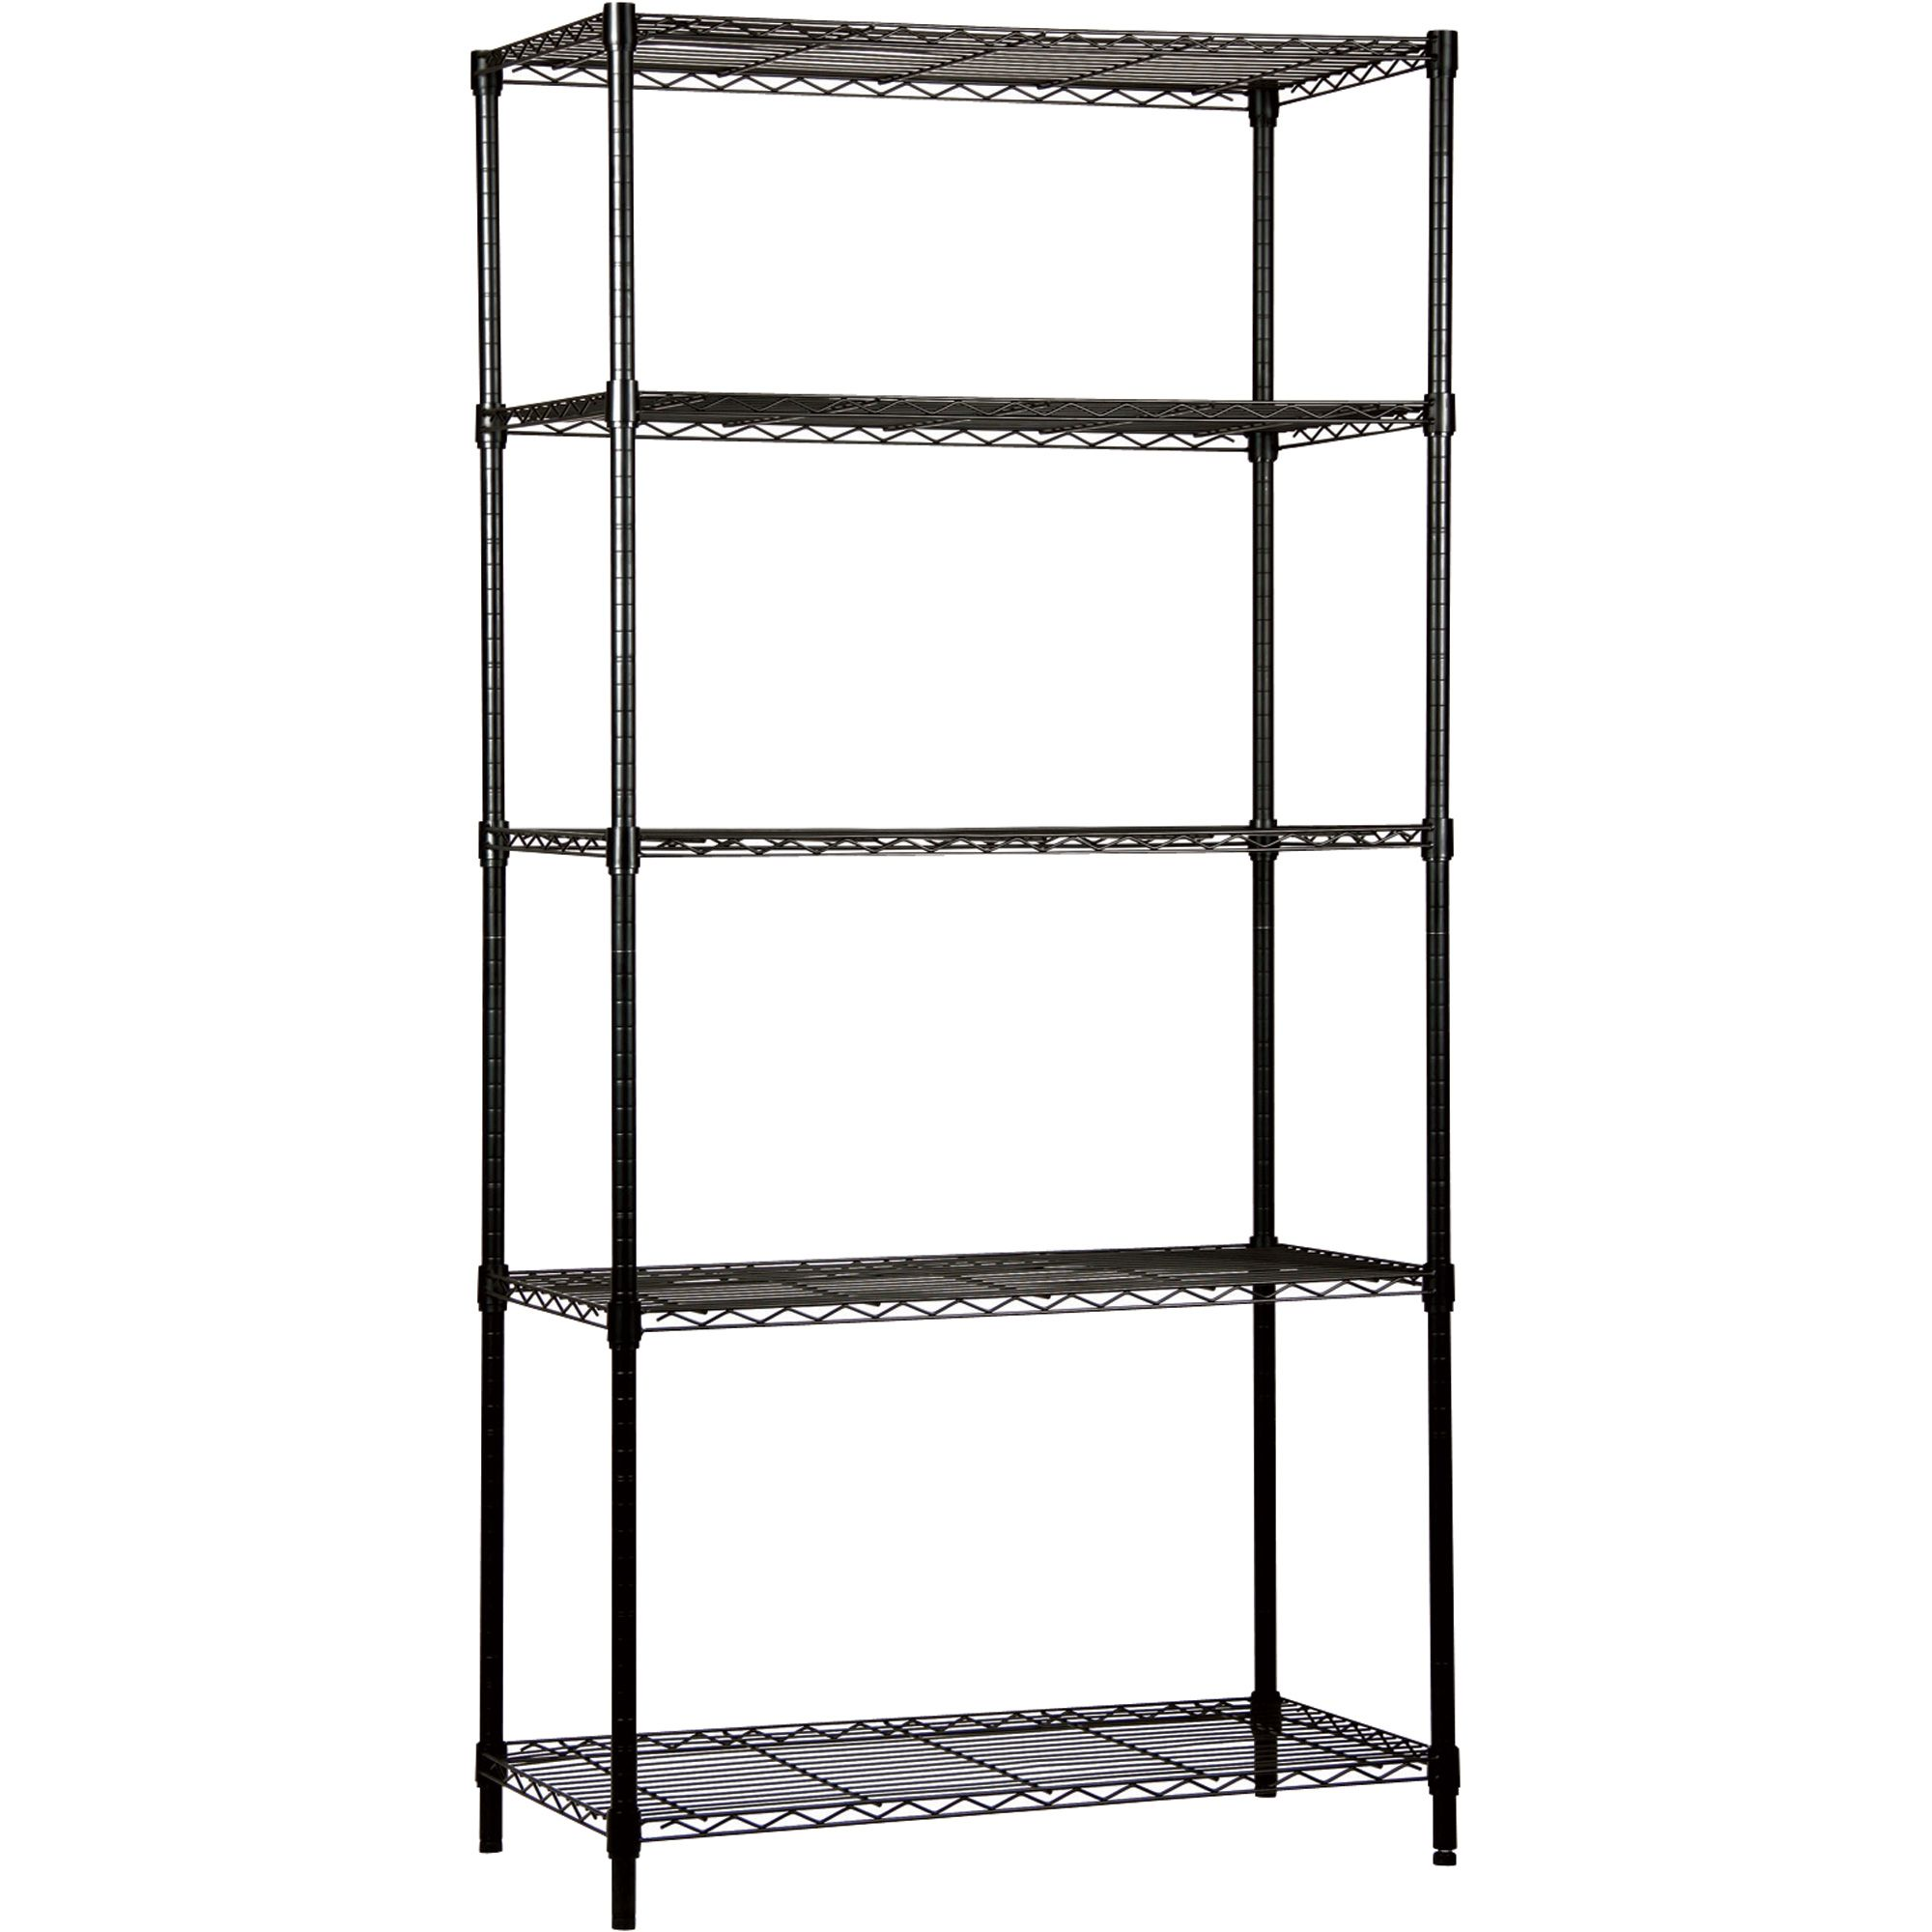 Black Wire Shelving Unit | Wire Shelving | Pinterest | Wire shelving ...